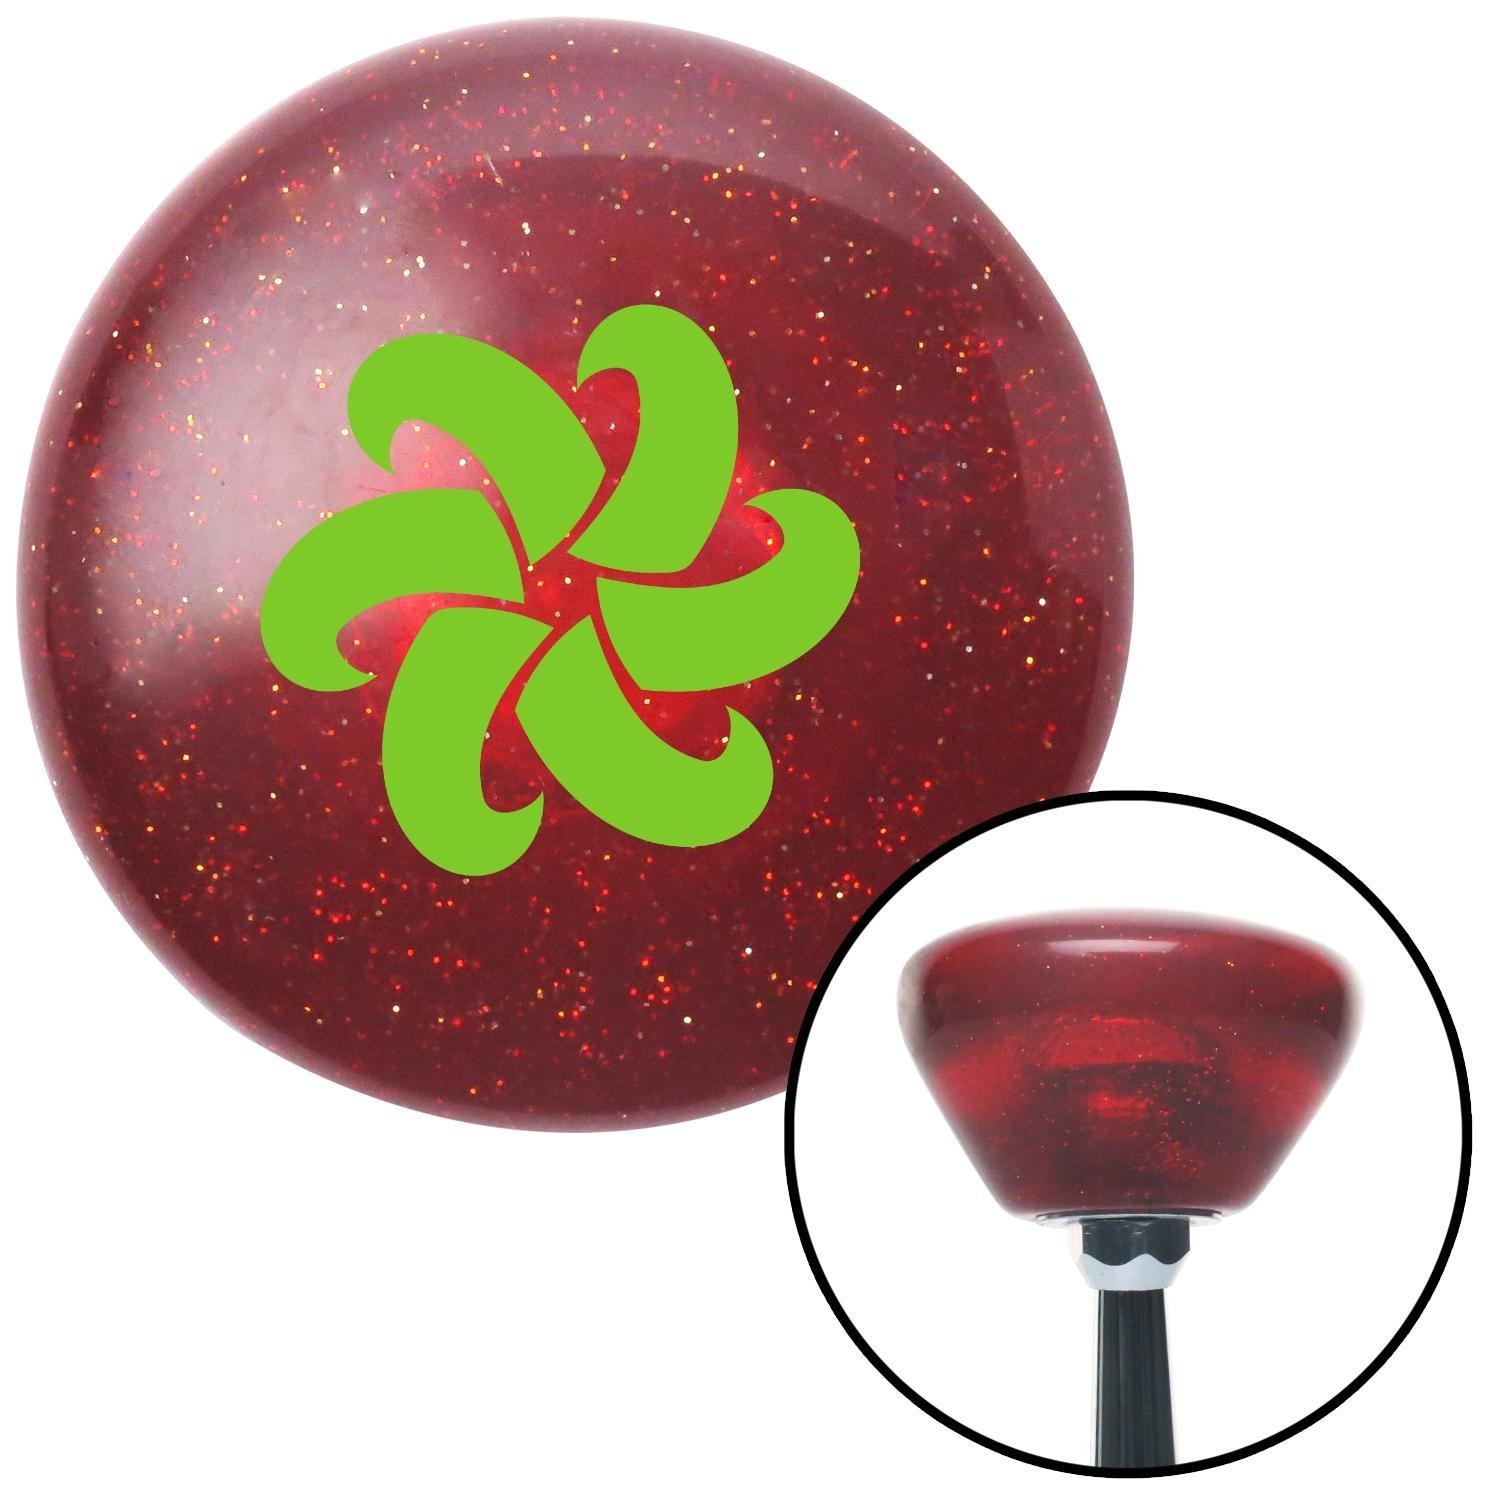 American Shifter 194225 Red Retro Metal Flake Shift Knob with M16 x 1.5 Insert Green Fan Blades Spinning